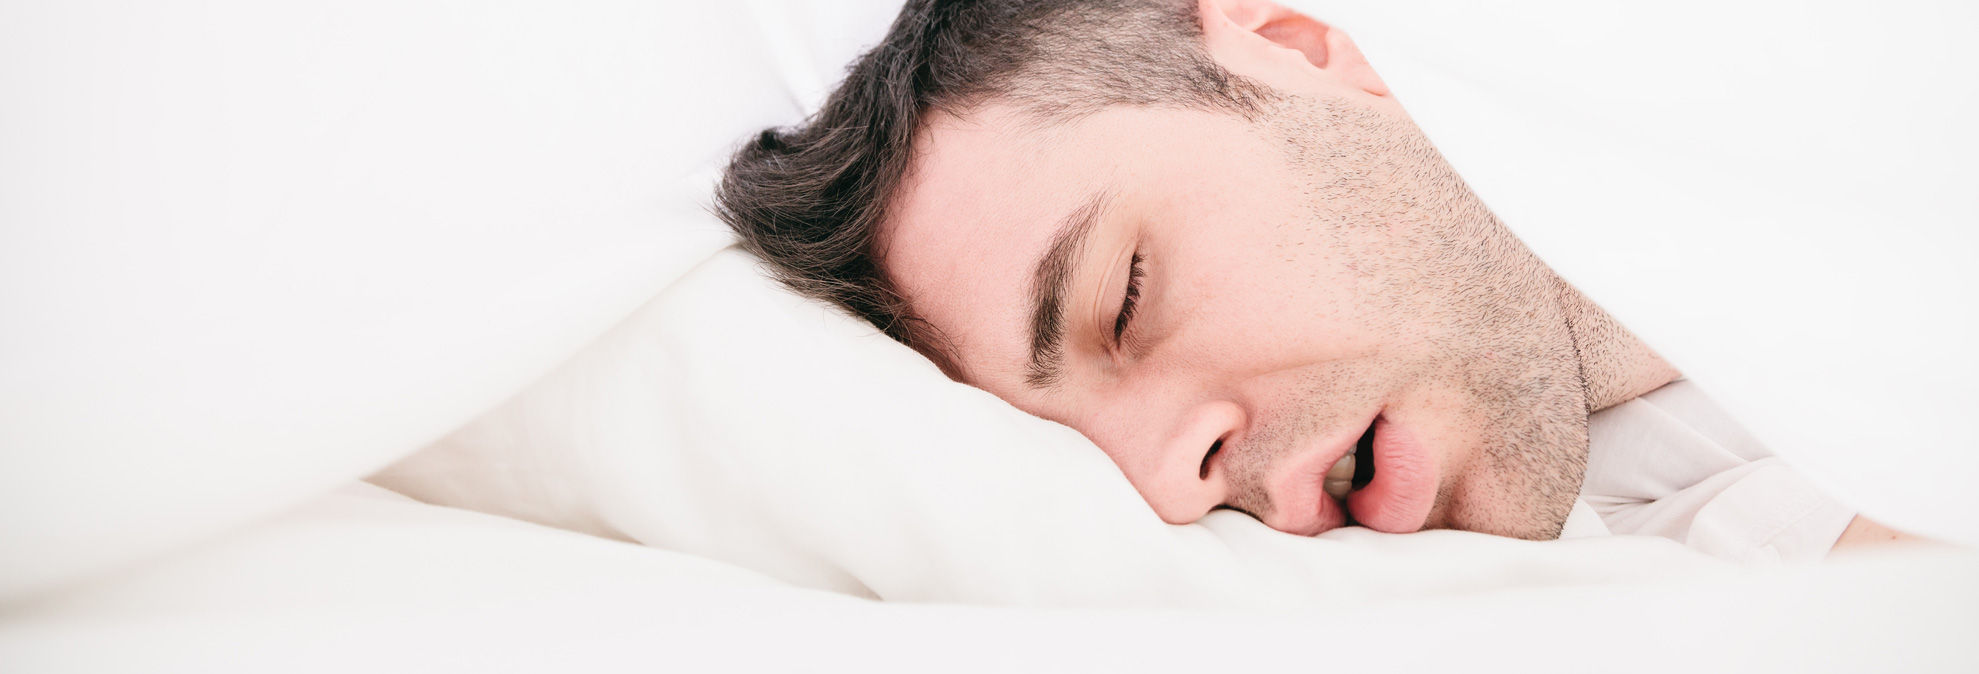 How To Stop Snoring Consumer Reports